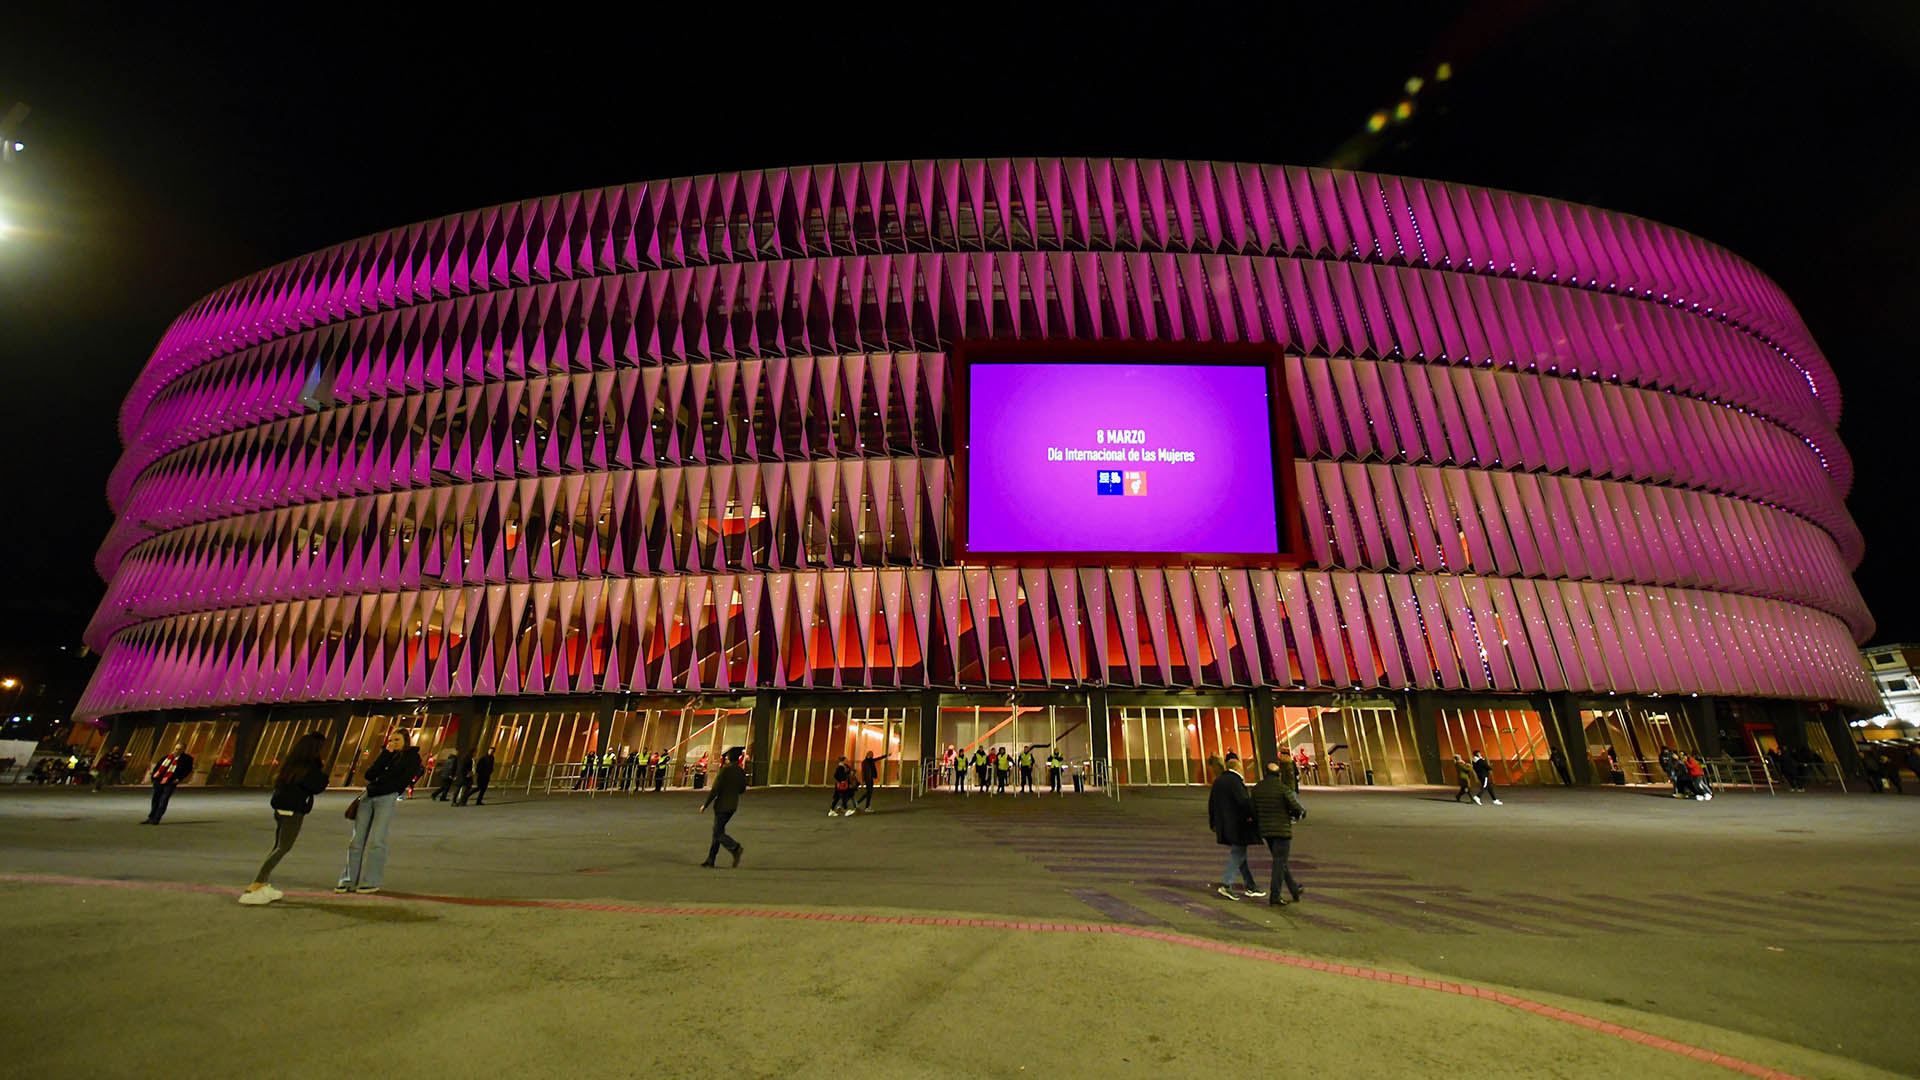 San Mamés in purple, mosaic and lighting